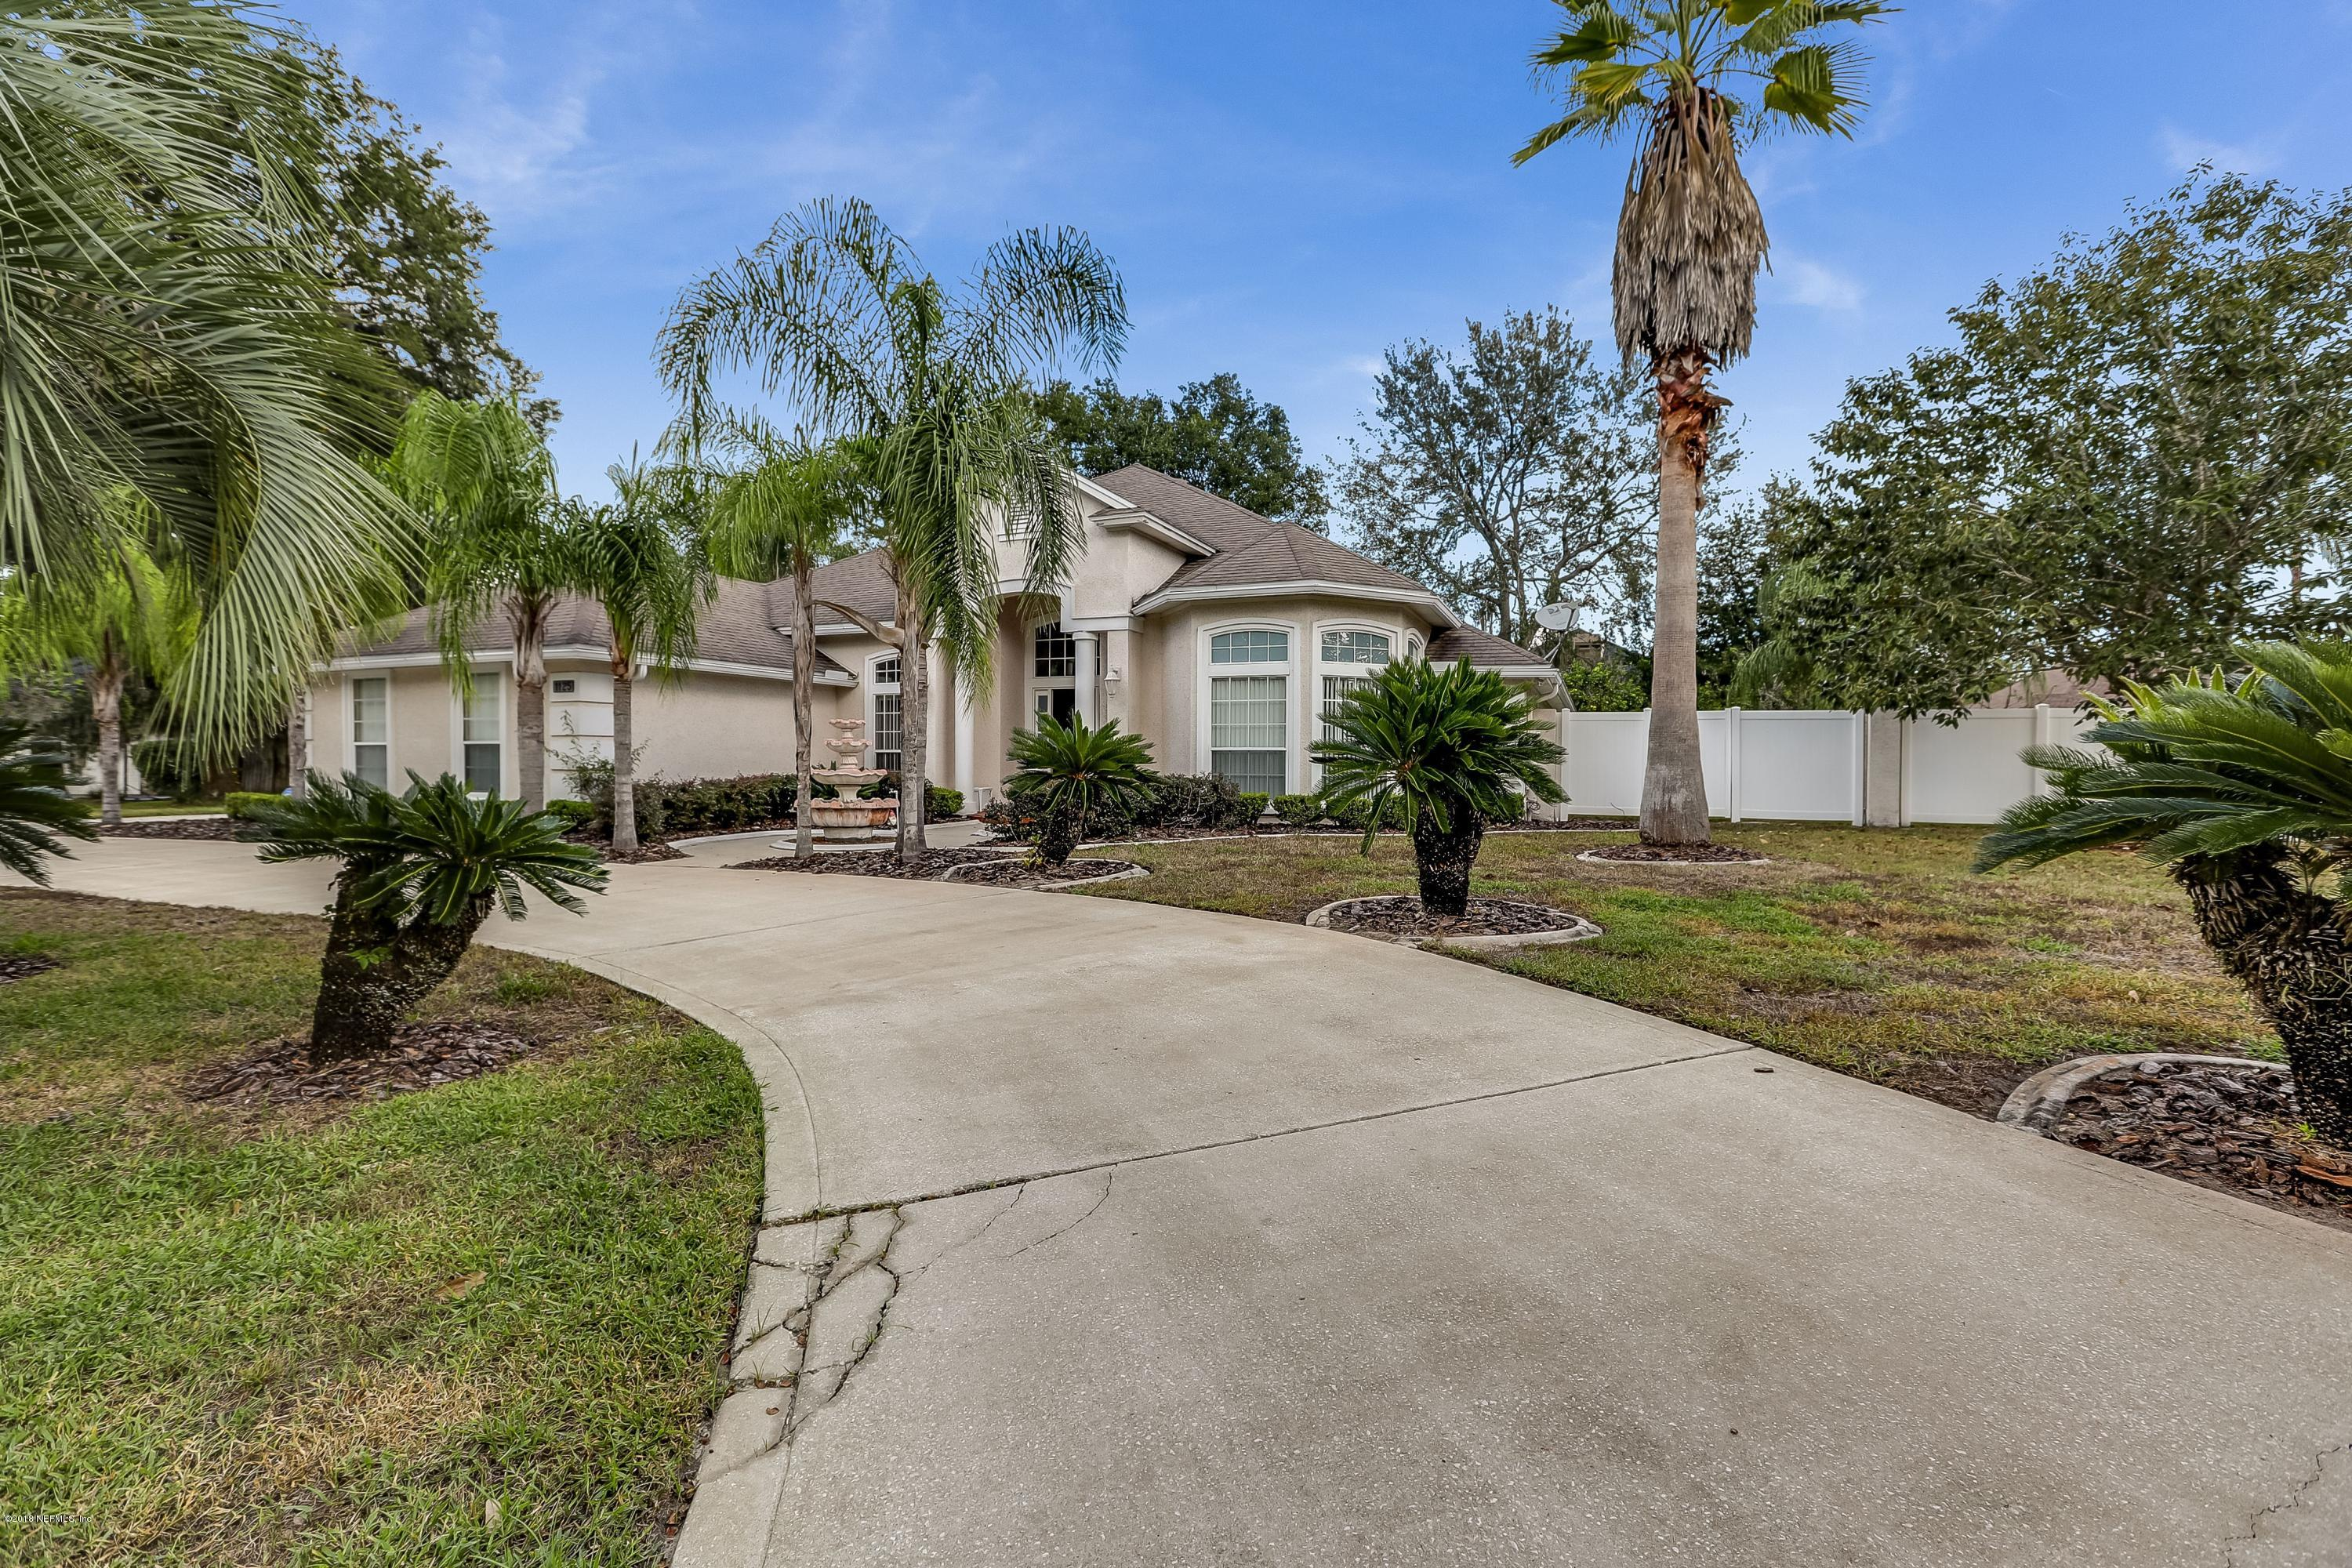 1125 DOVER, ST JOHNS, FLORIDA 32259, 4 Bedrooms Bedrooms, ,3 BathroomsBathrooms,Residential - single family,For sale,DOVER,961196